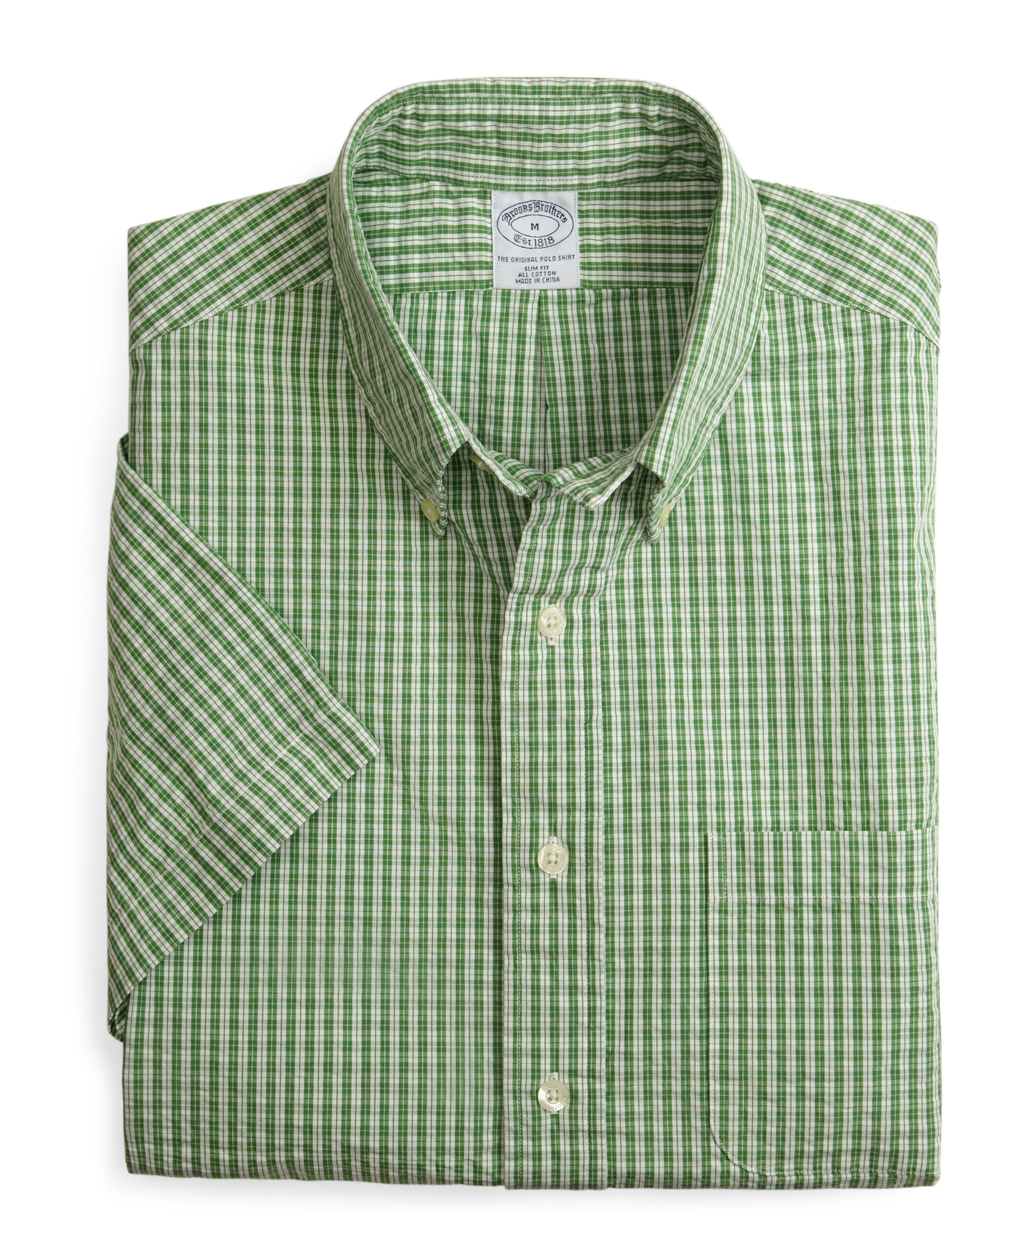 Brooks brothers allcotton slim fit shortsleeve green check Brooks brothers shirt size guide